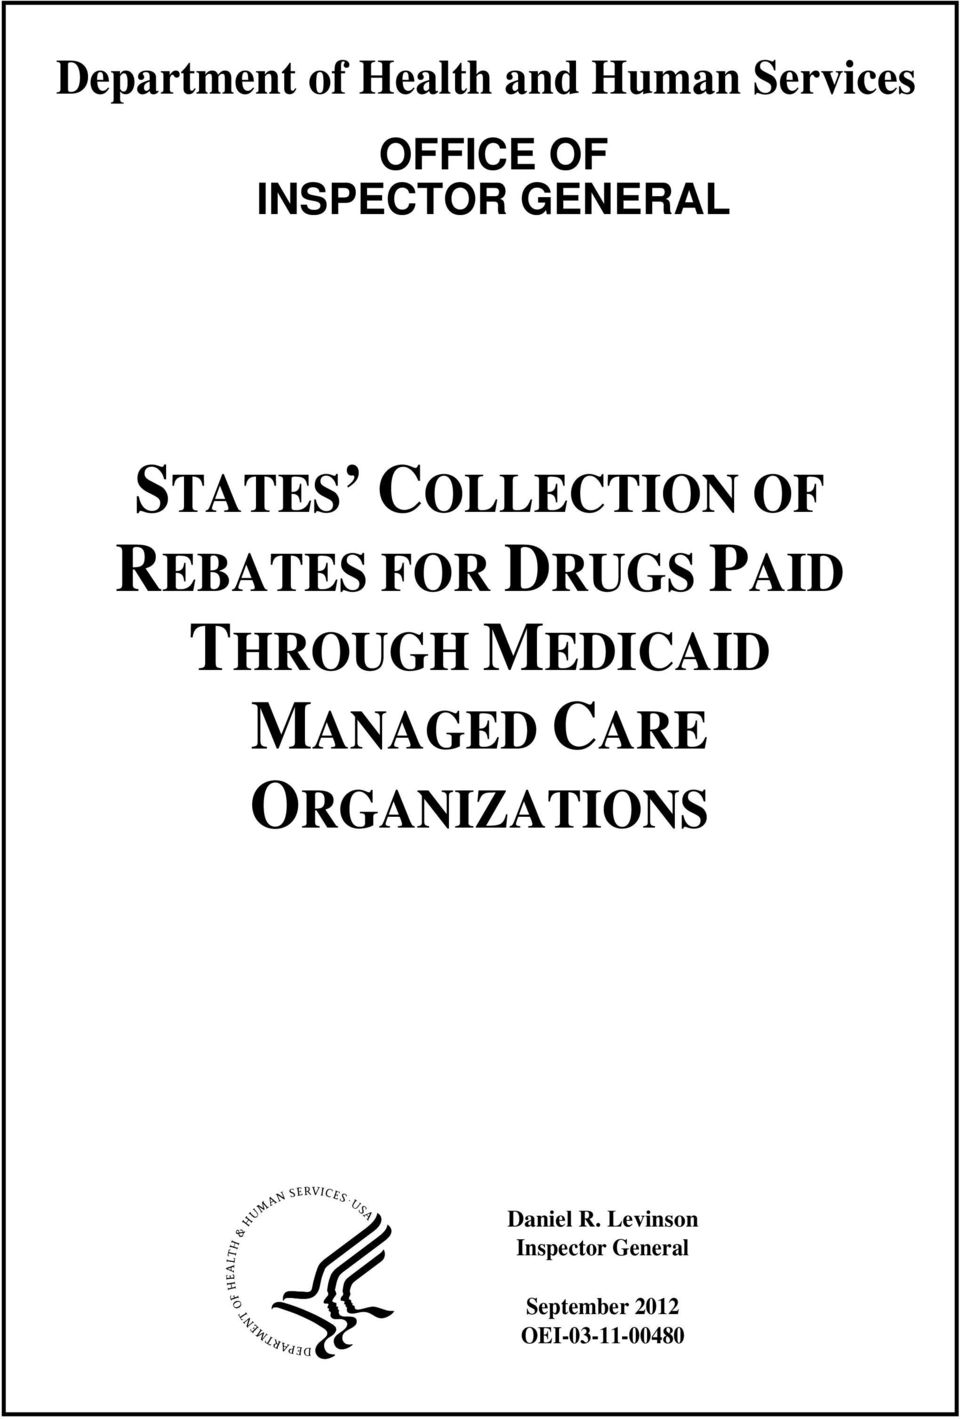 DRUGS PAID THROUGH MEDICAID MANAGED CARE ORGANIZATIONS